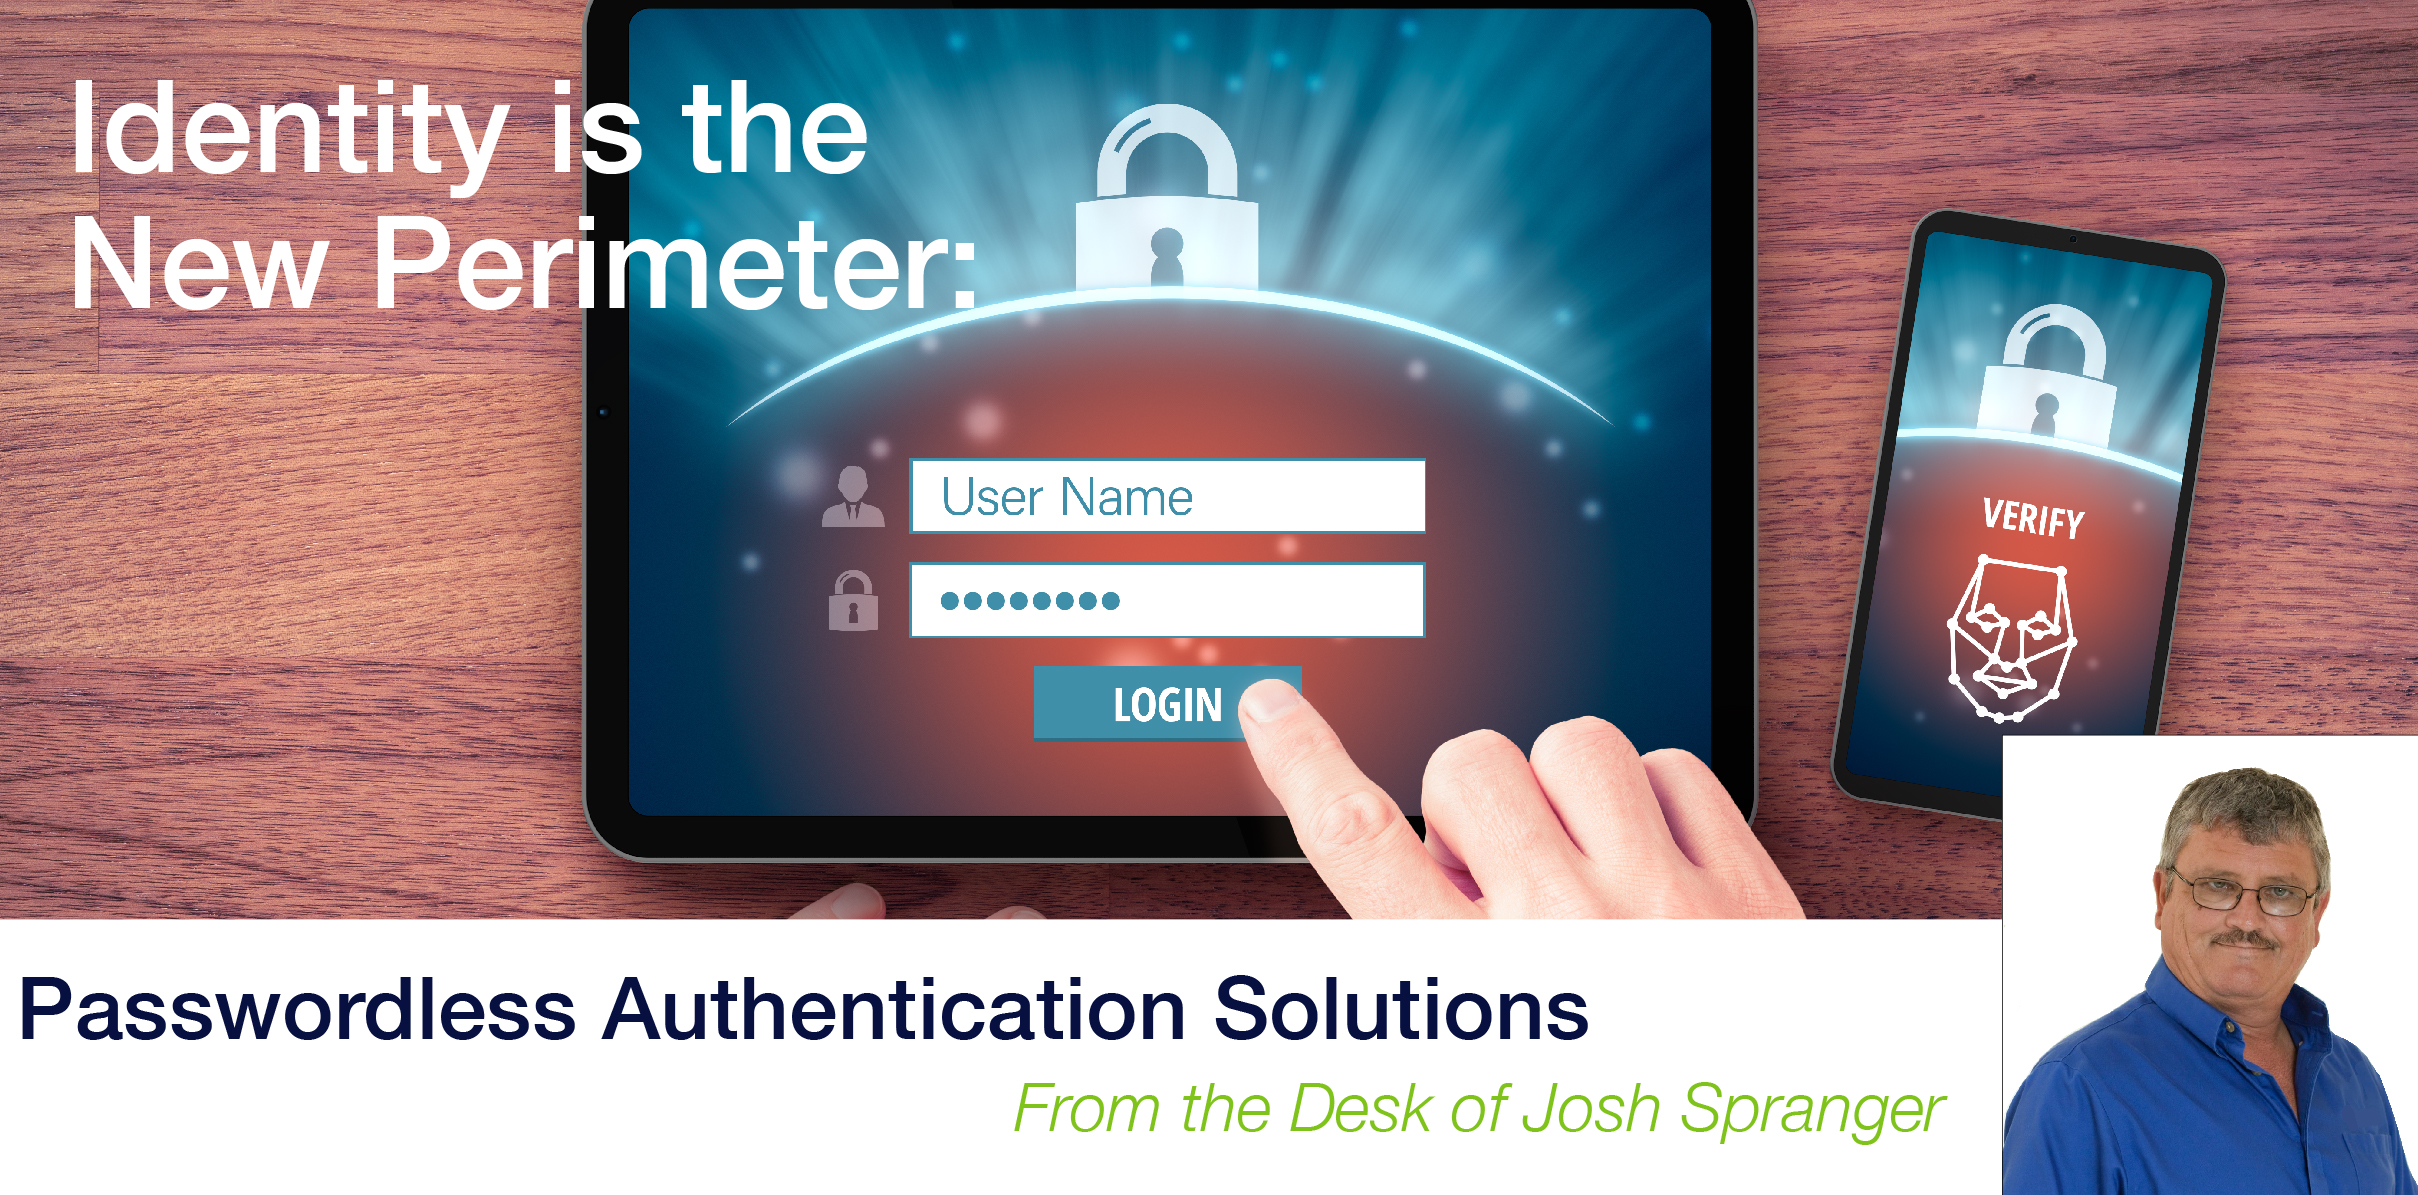 Identity is the New Perimeter: Passwordless Authentication Solutions image